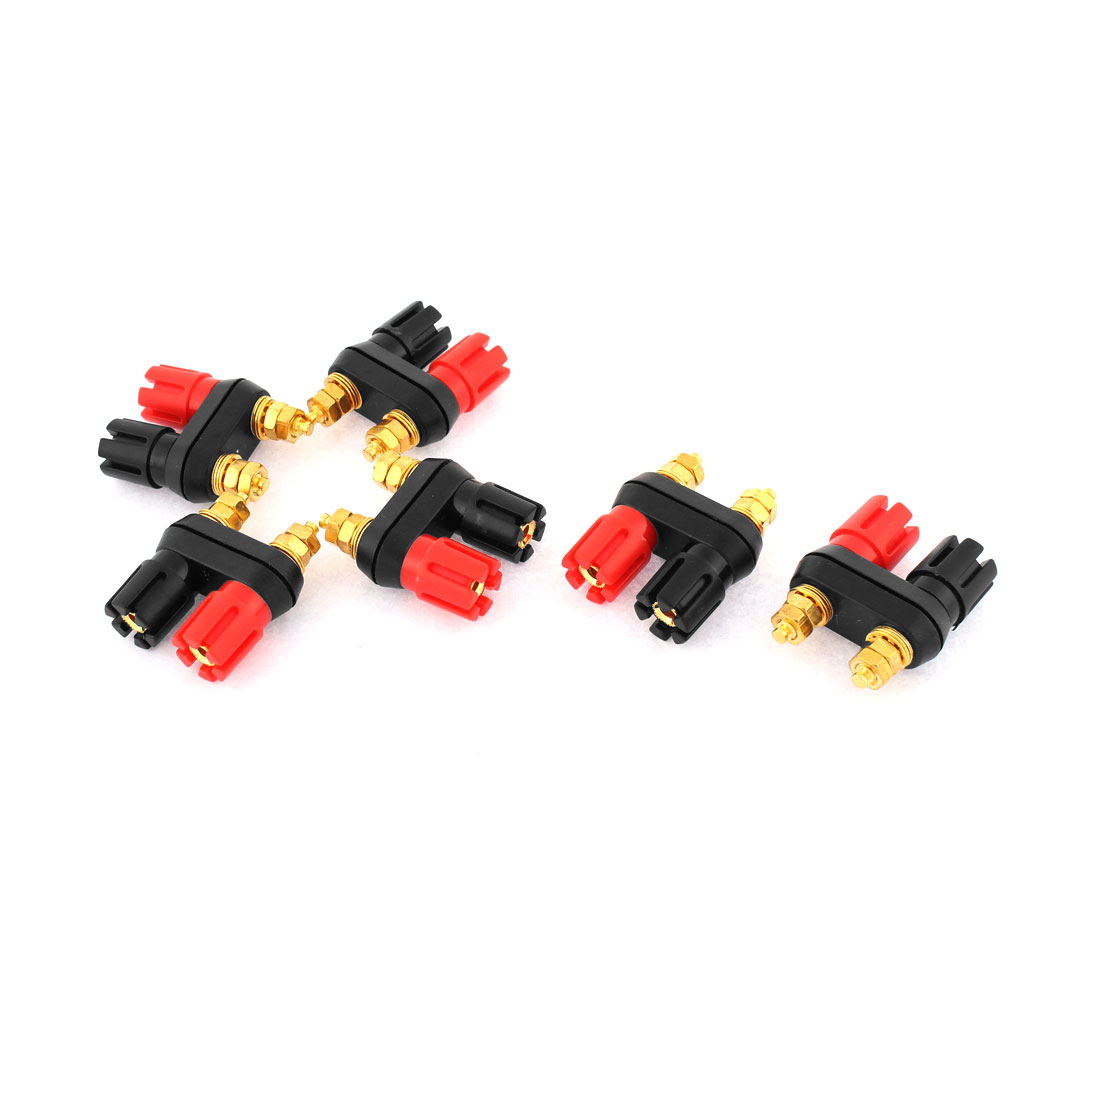 6pcs 5mm Thread Dual Jack Terminal Speaker Amplifier Binding Post for 4mm Banana Plug